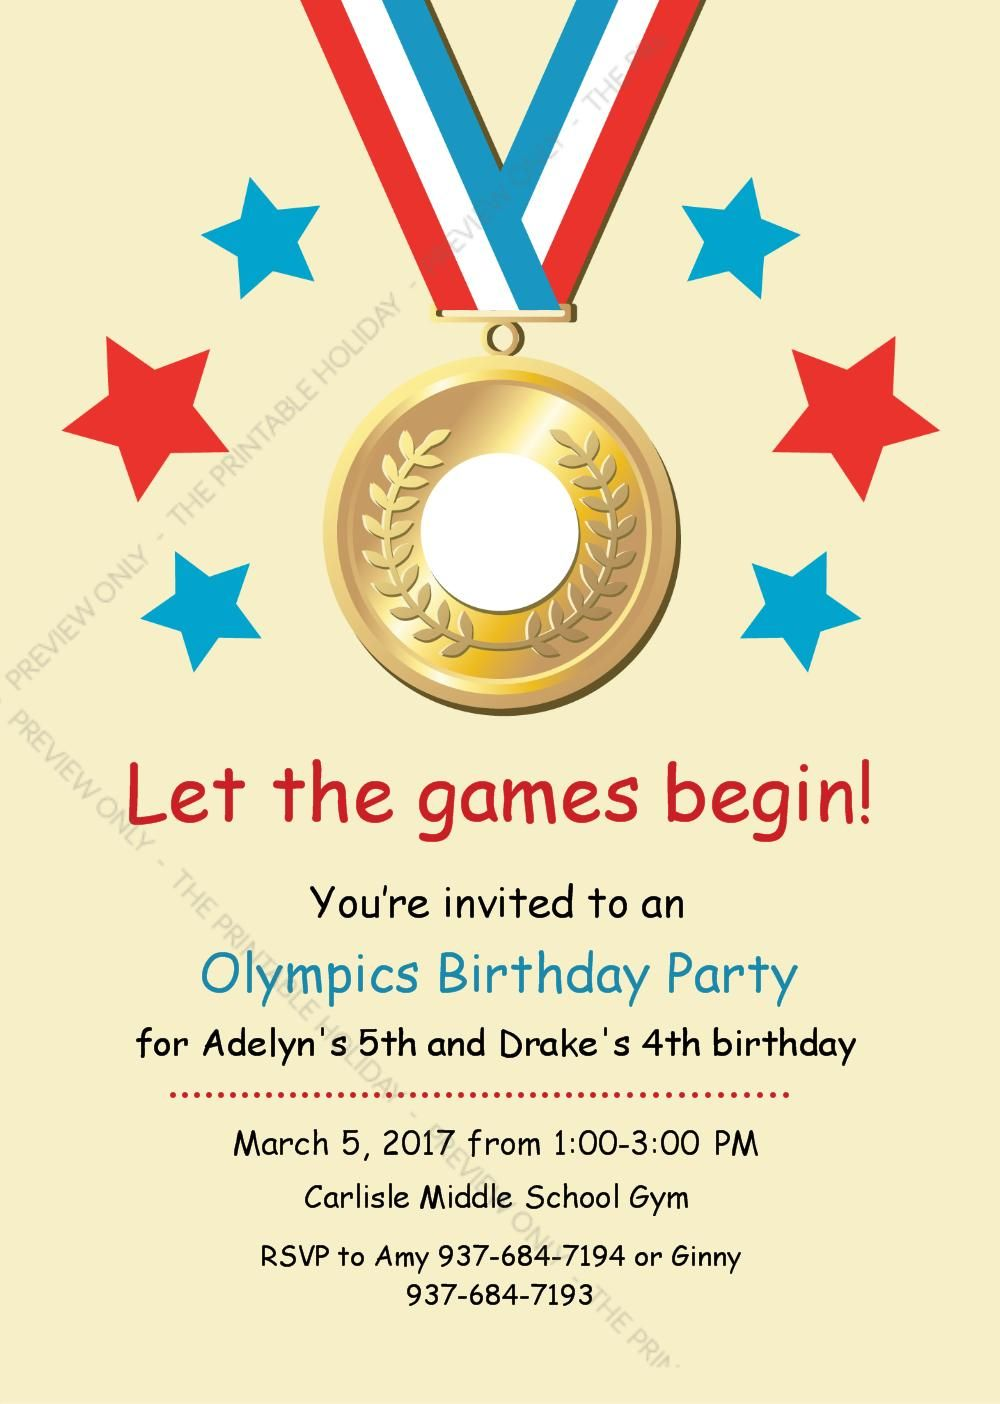 Olympic Medal Birthday Party Invitation | Adelyn\'s 5th Birthday ...